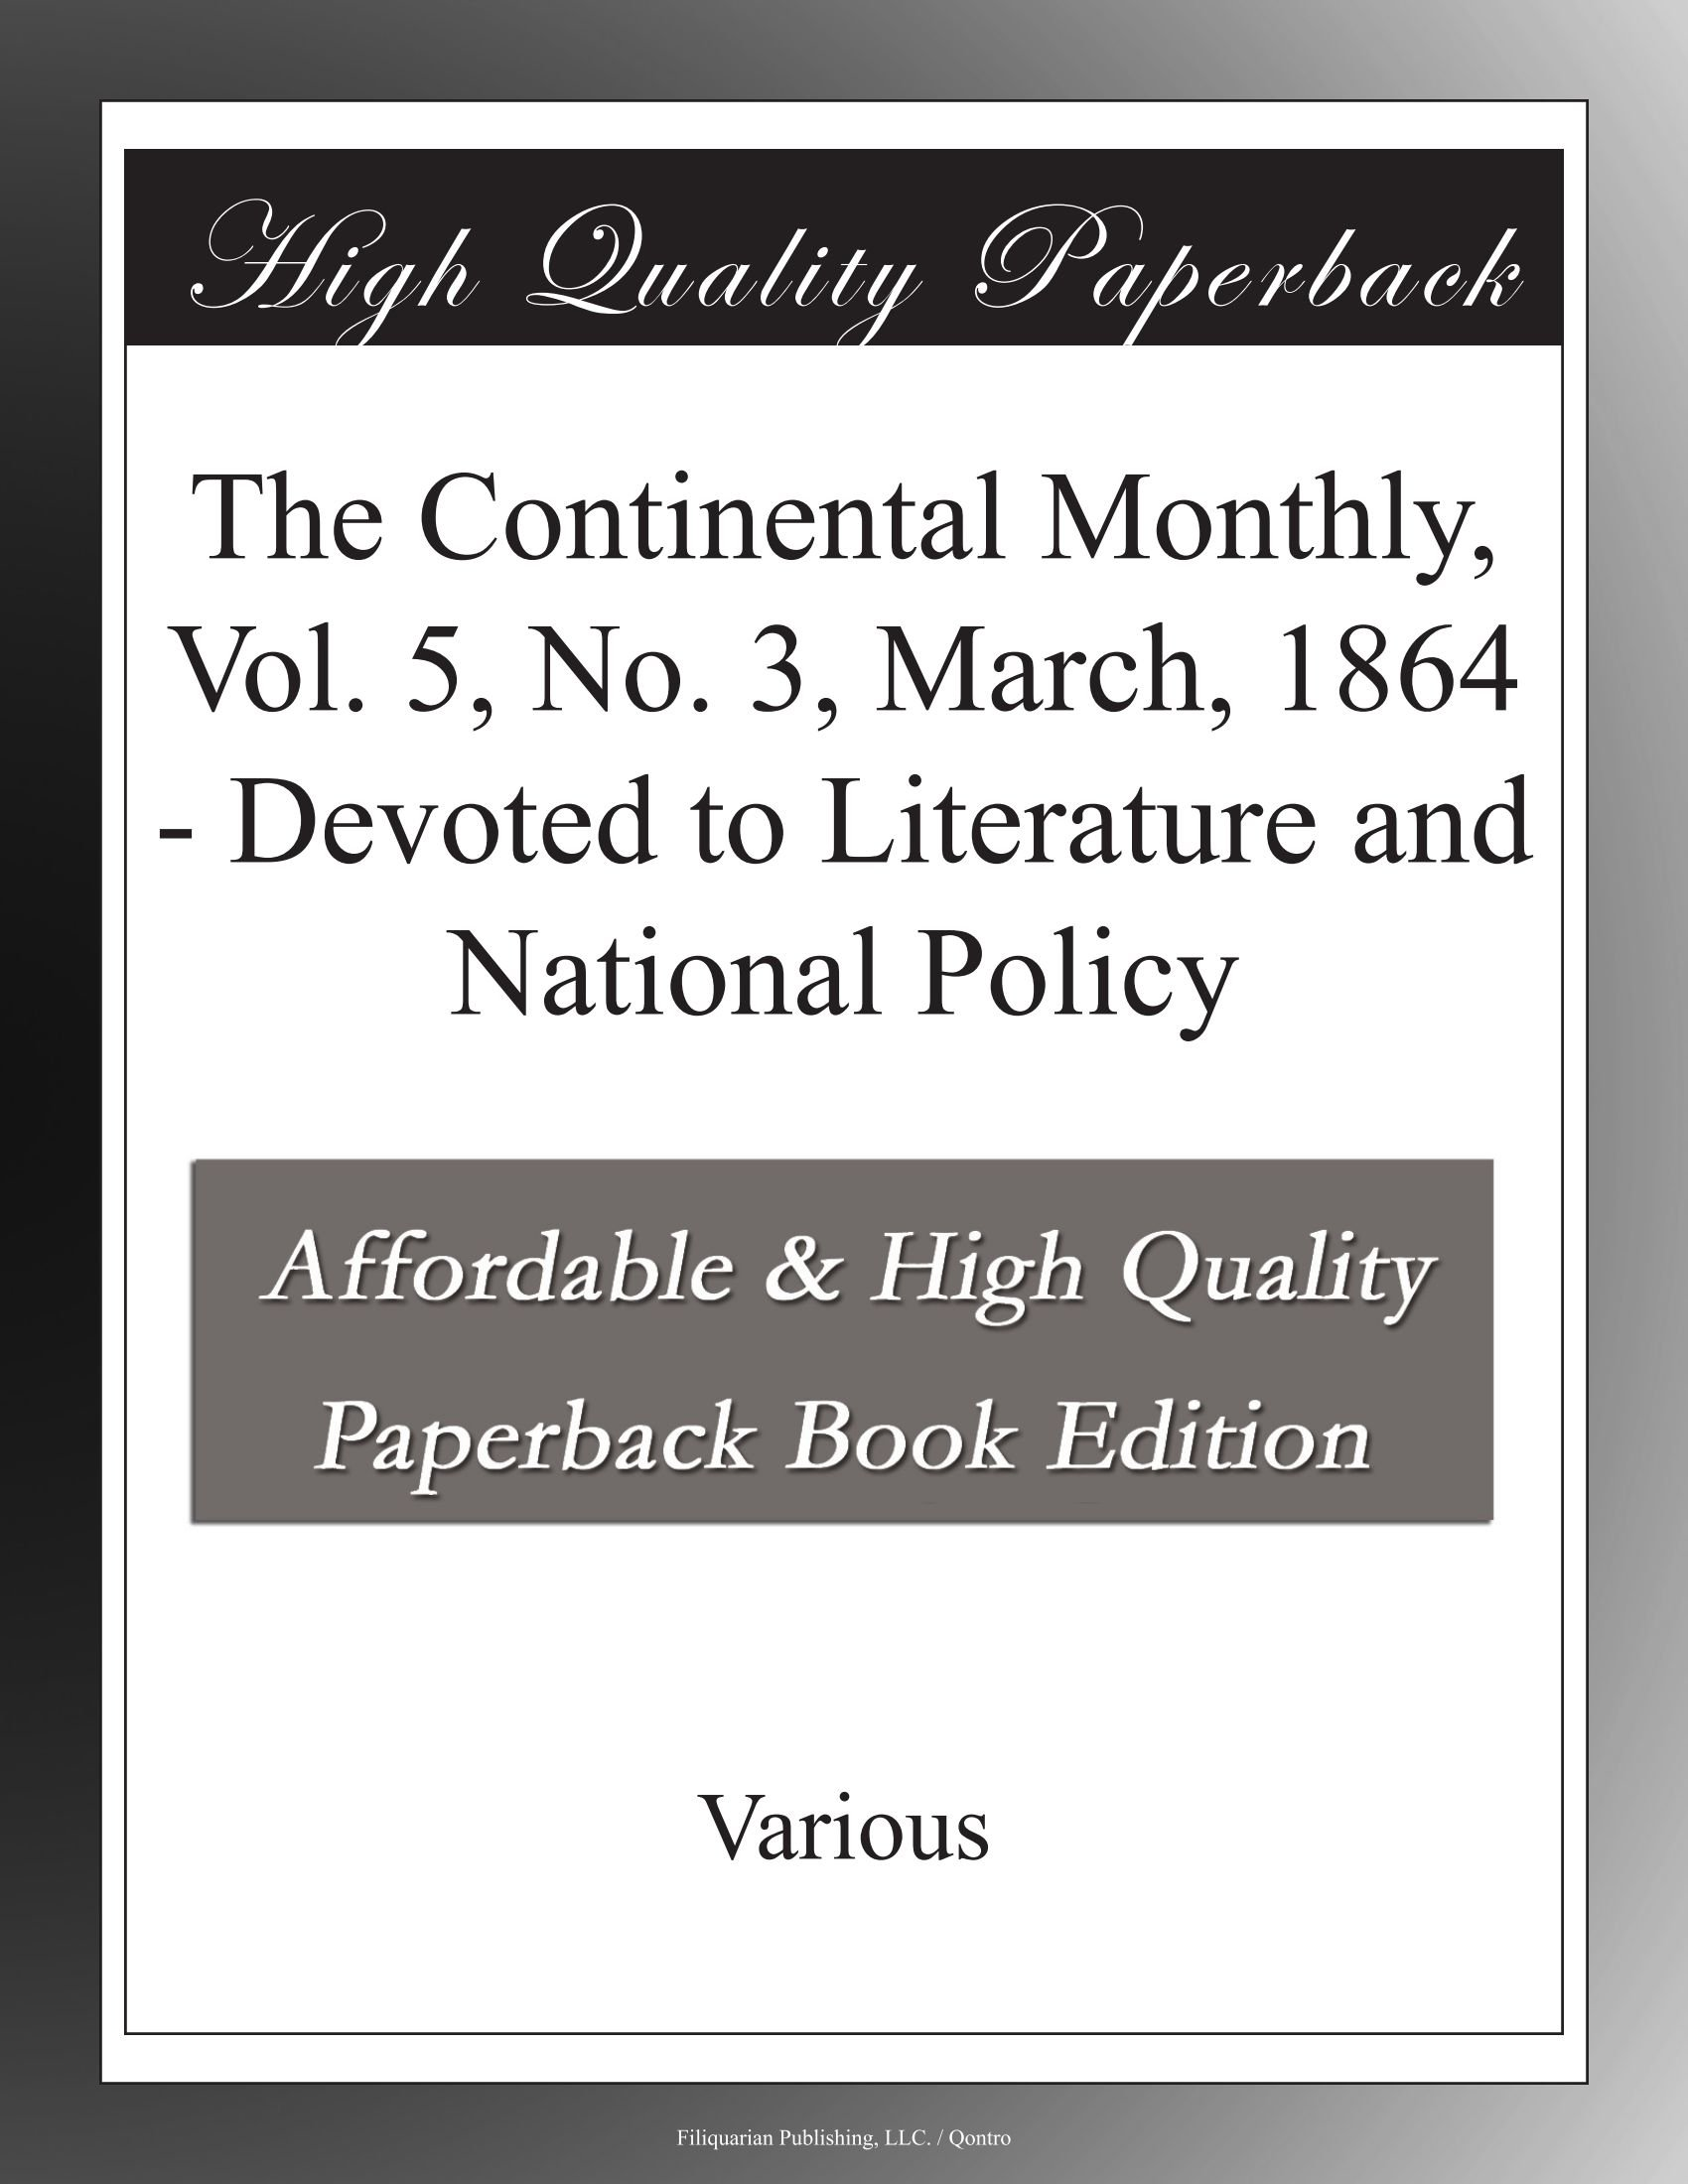 The Continental Monthly, Vol. 5, No. 3,  March, 1864 - Devoted to Literature and National Policy ebook